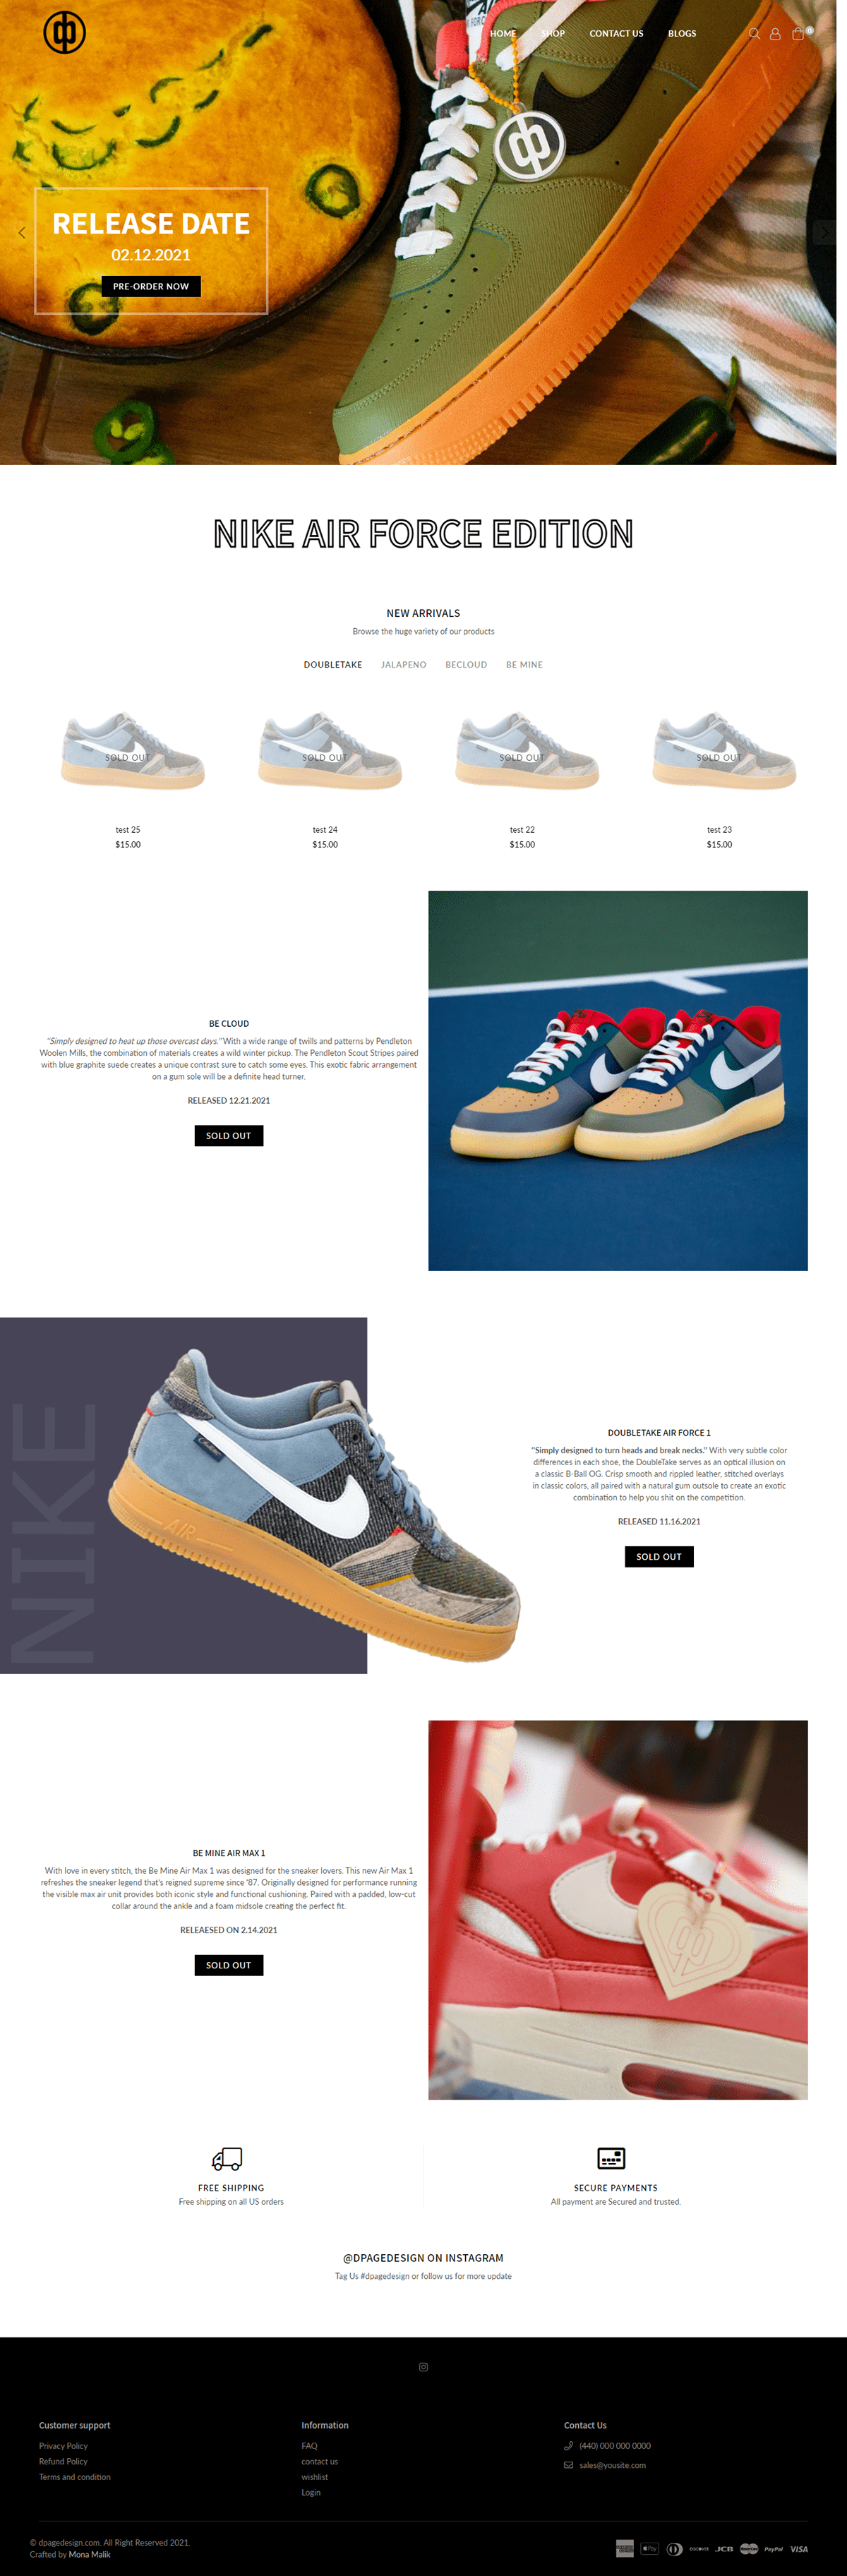 development,Nike,photoshop,Shopify,ua,usa